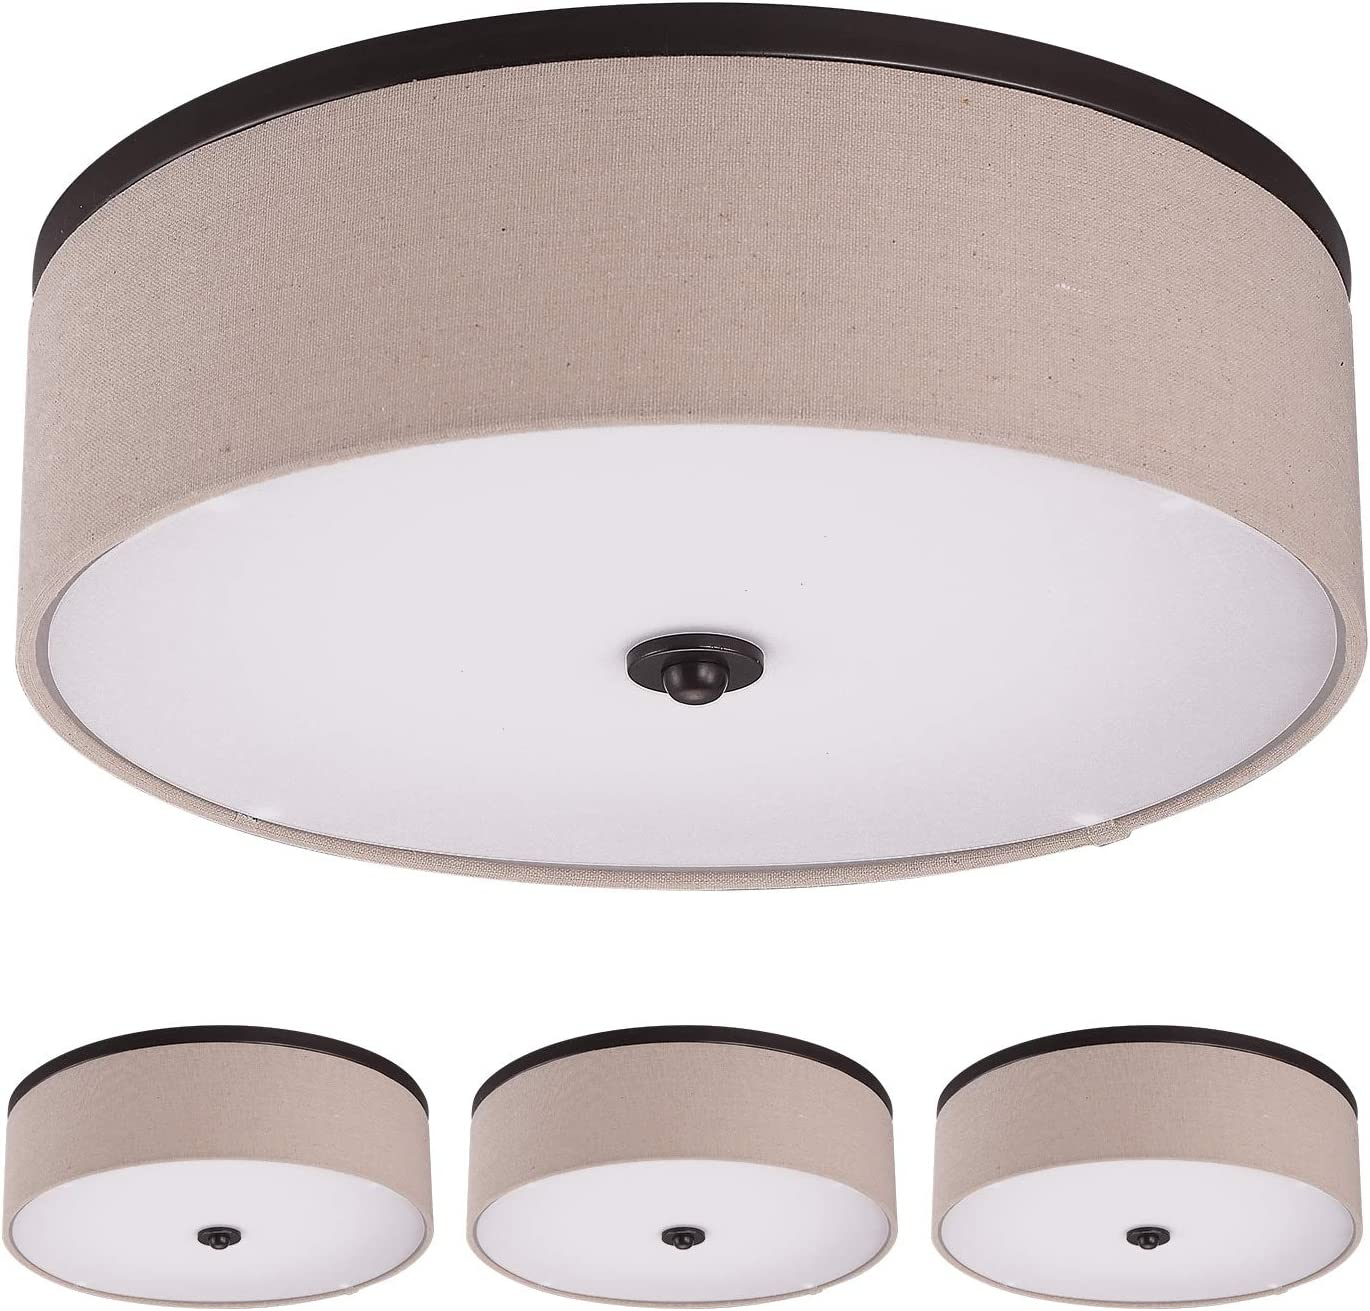 Amazon Com Ostwin 4 Pack 15 Inch Led Flush Mount Ceiling Light Dimmable Drum Light Fixture Natural Linen Fabric Shade With Oil Rubbed Bronze 23w 120w Eq 1650 Lm 3000k Warm White Etl